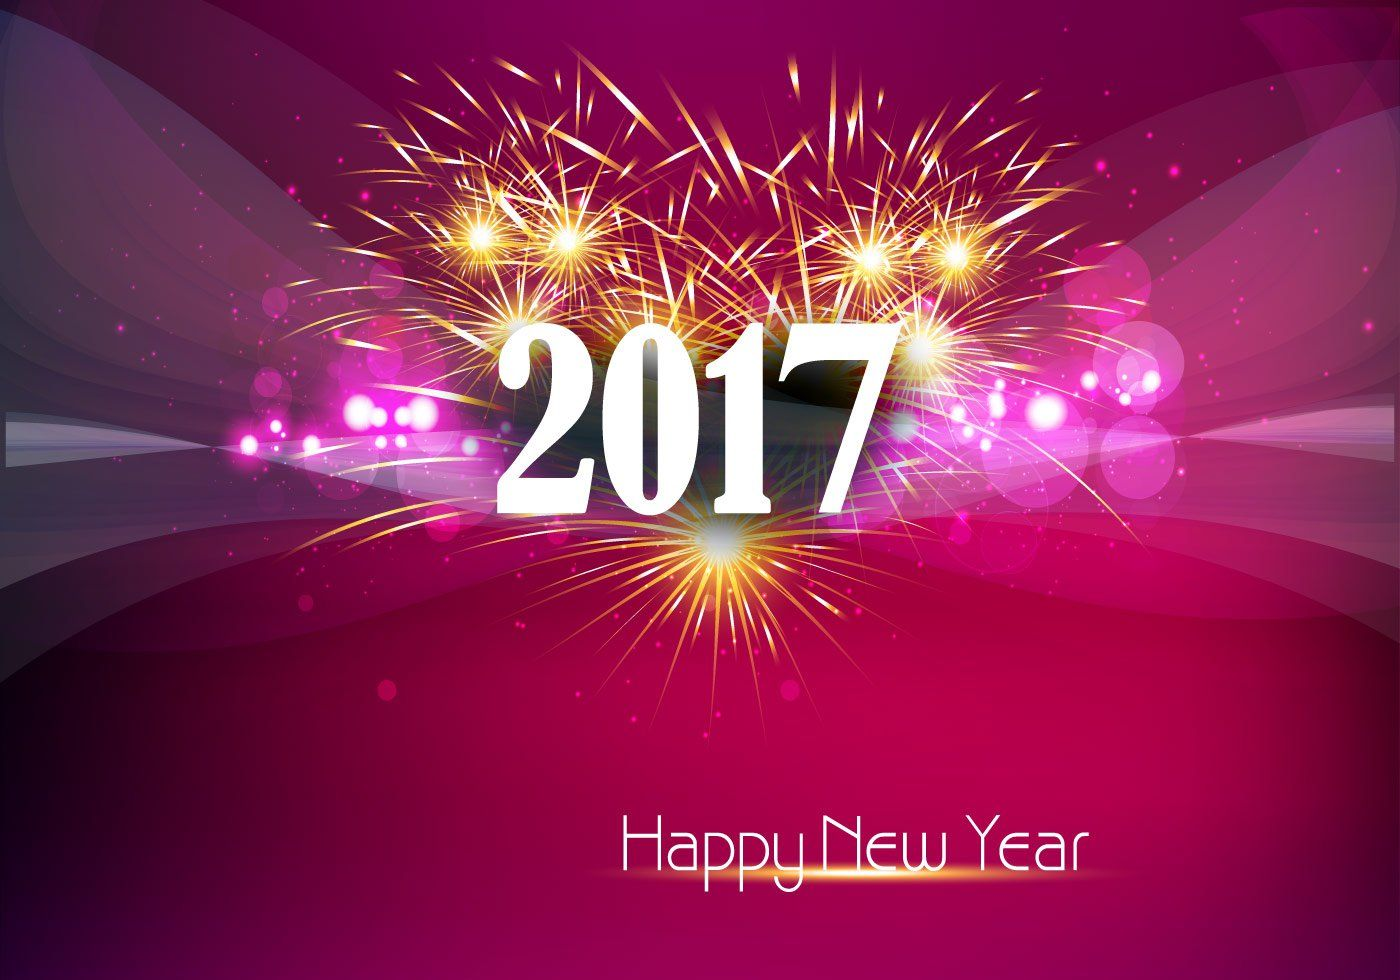 Happy New Year 2017 Banner With Fire Cracker New Year Pinterest